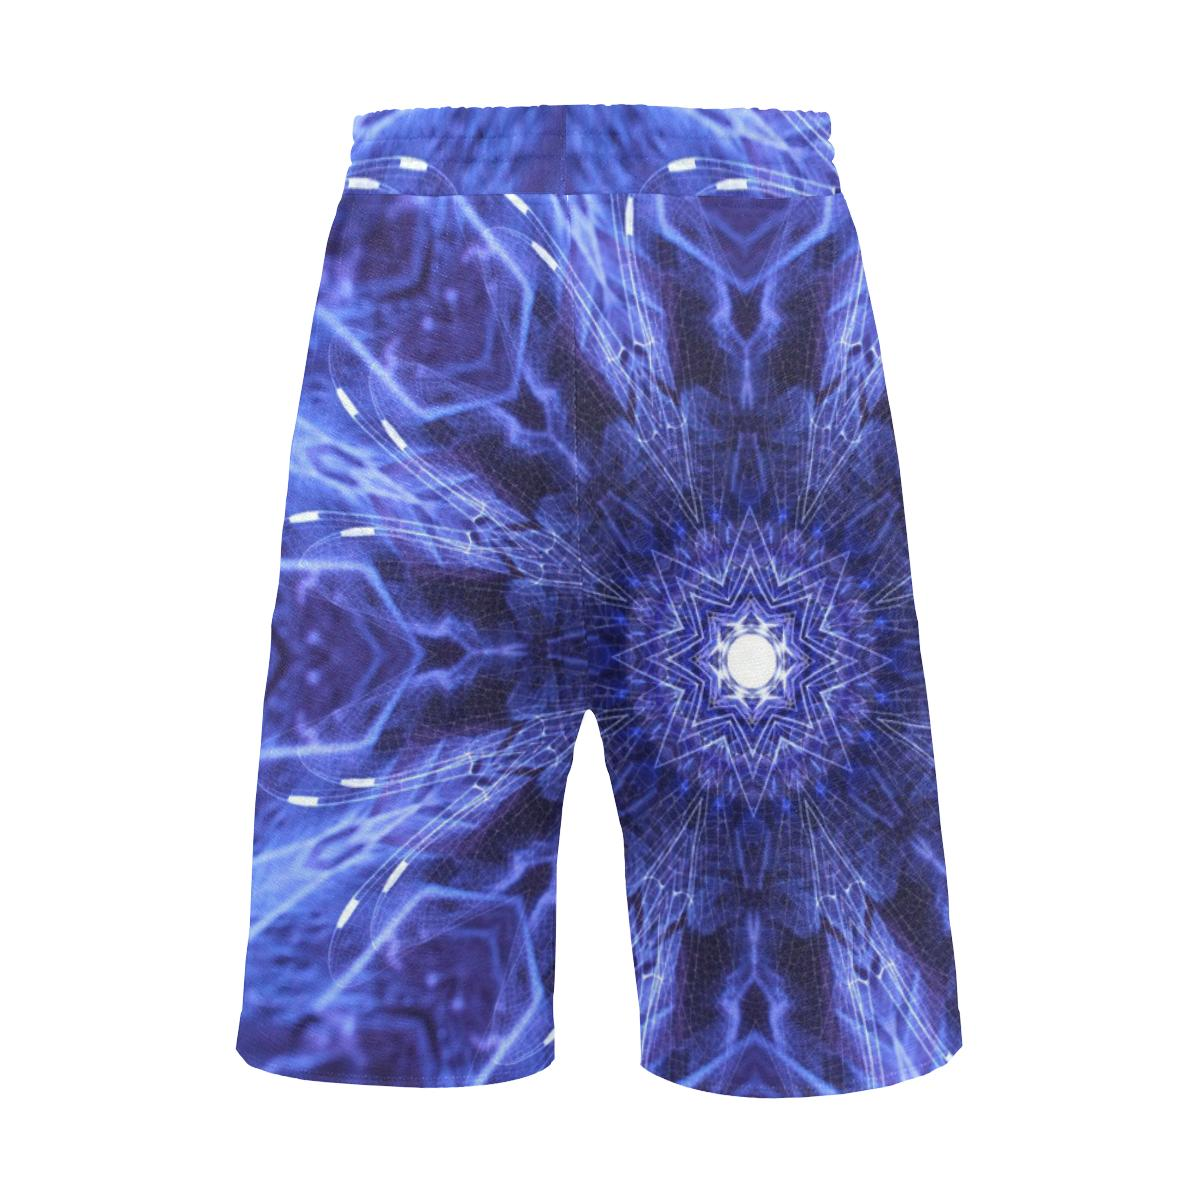 Sacred Geometry Blue Casual Boardshorts - Maui Woke